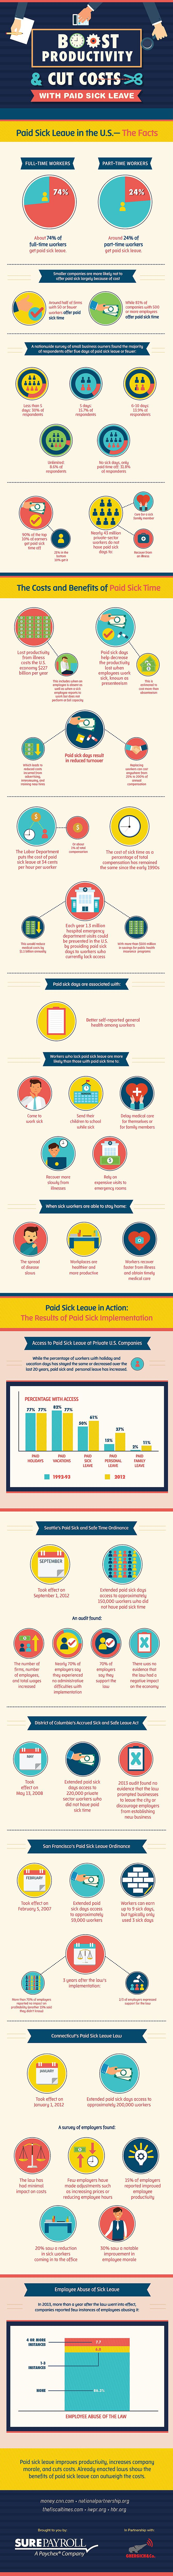 Boost Productivity and Cut Costs with Paid Sick Leave #infographic